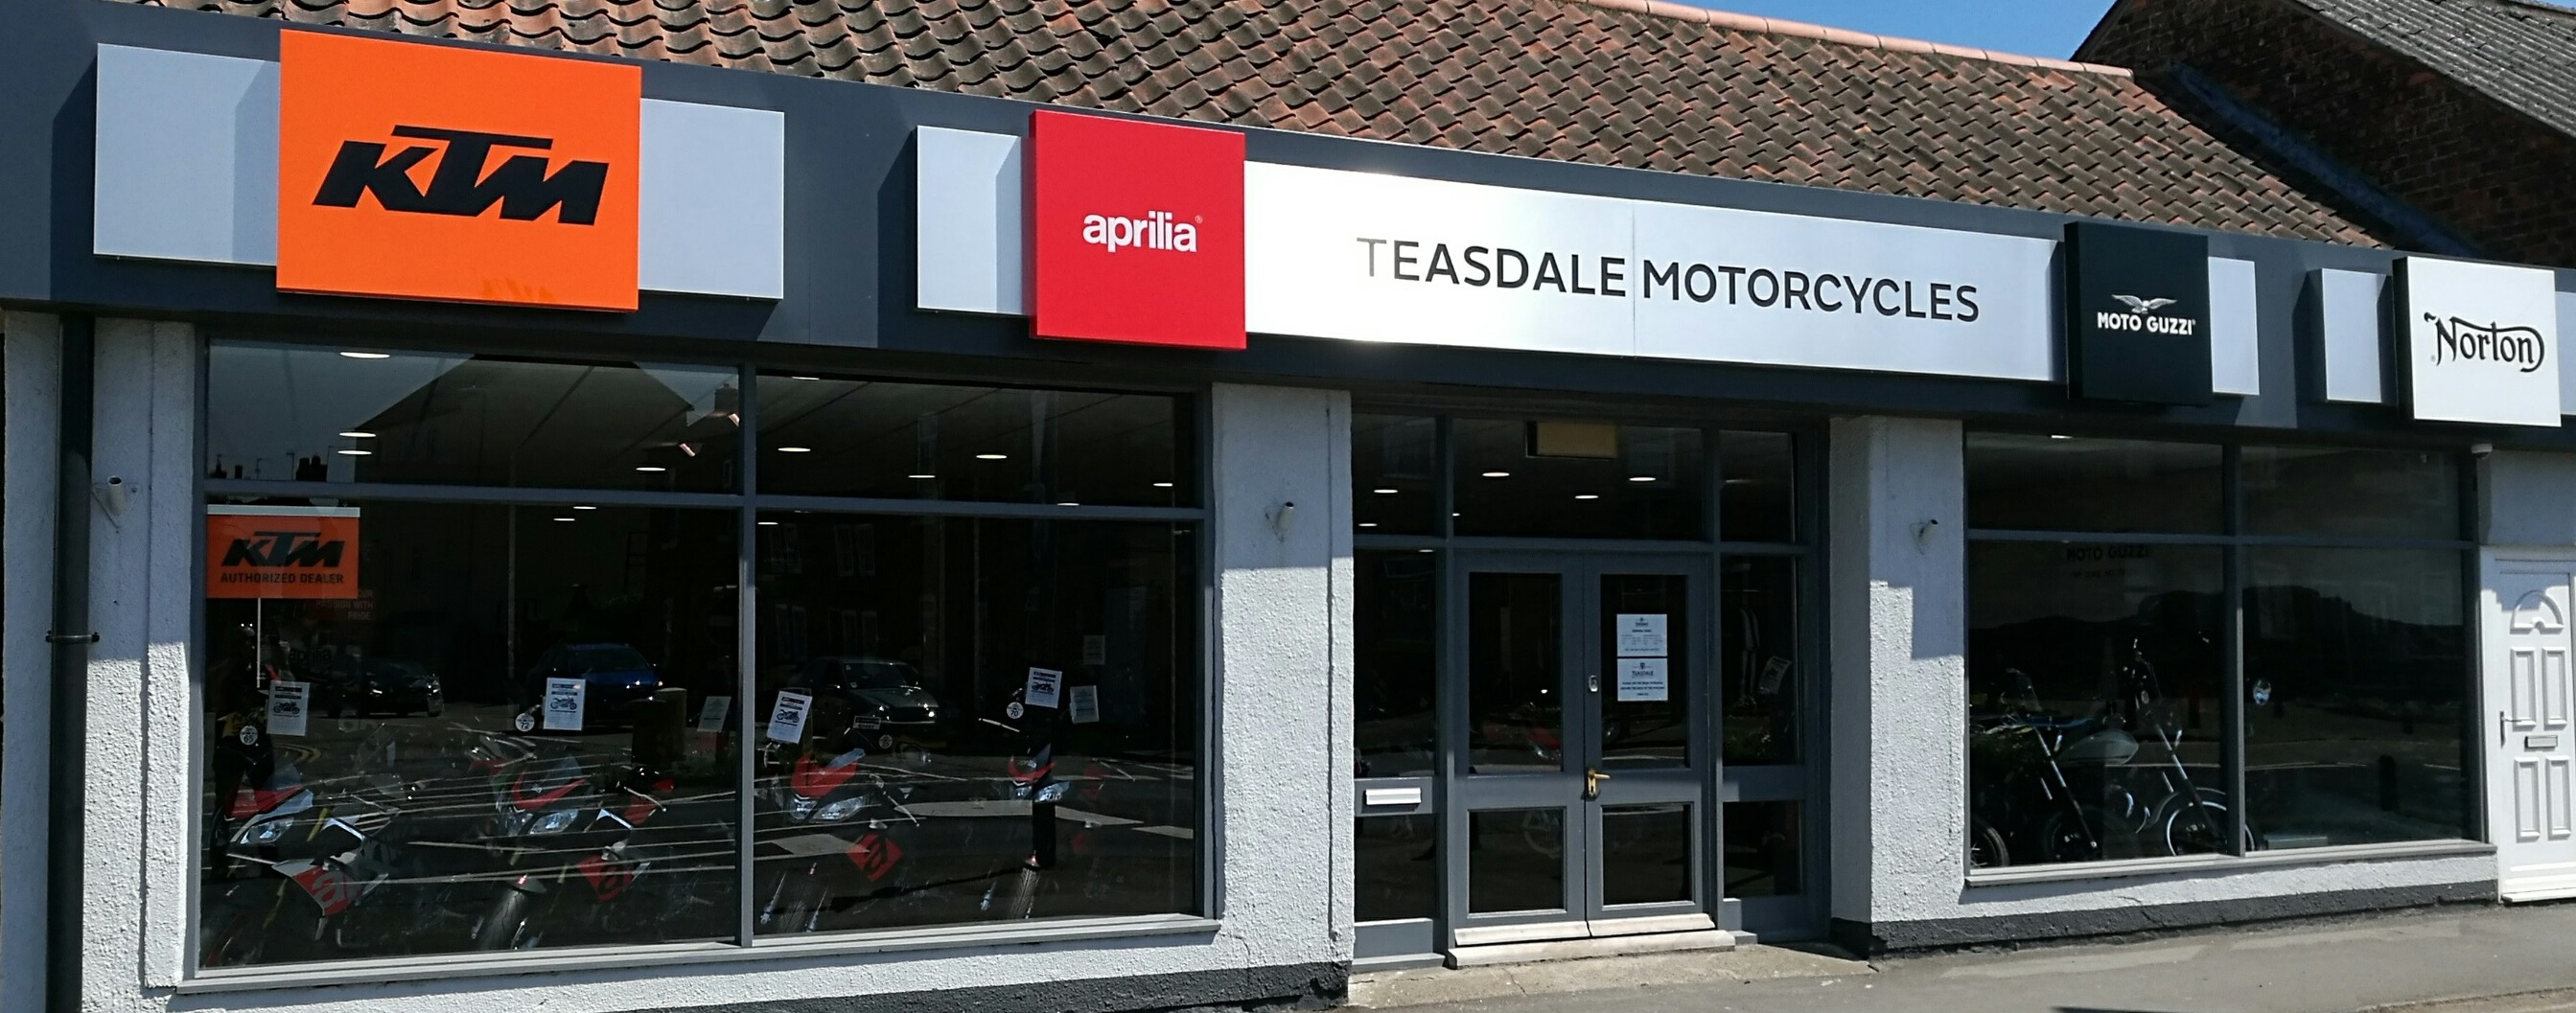 Teasdale Motorcycles Store Front